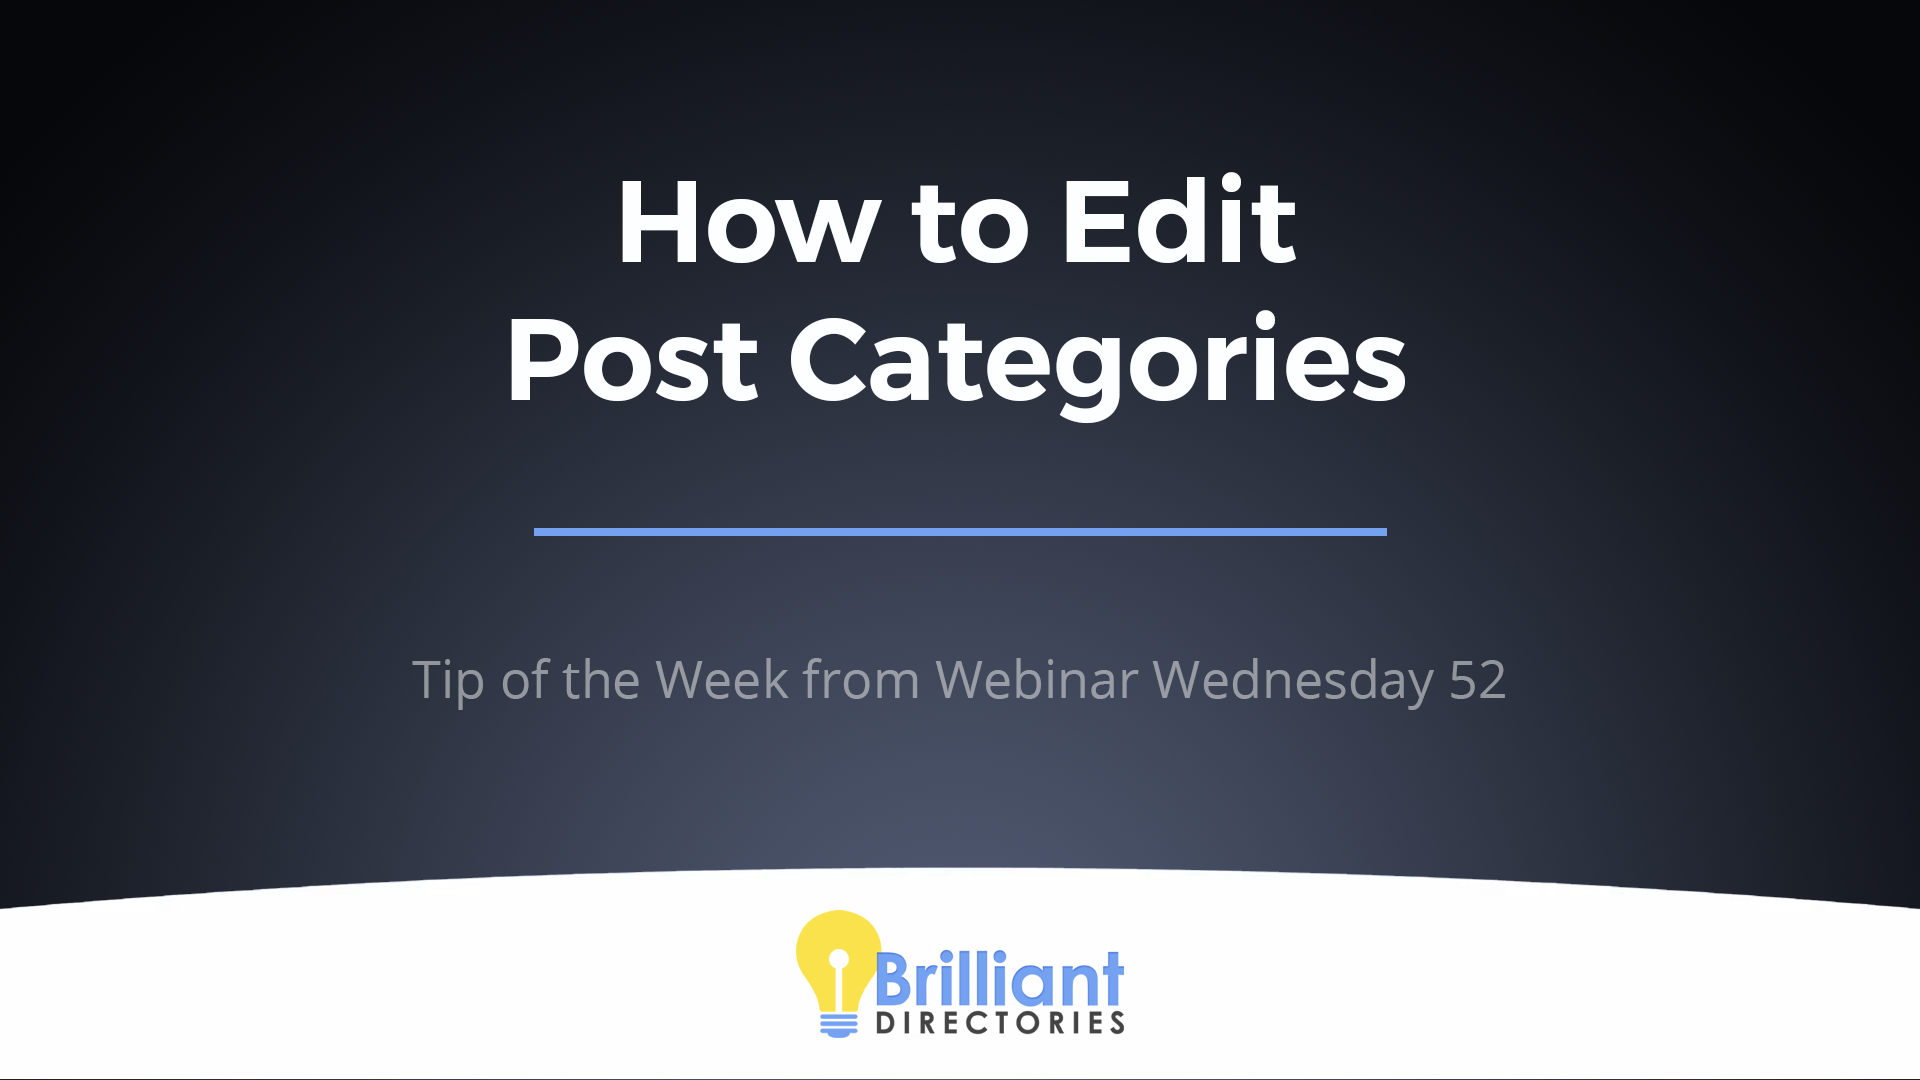 https://www.brilliantdirectories.com/blog/how-to-edit-the-categories-for-your-different-posts